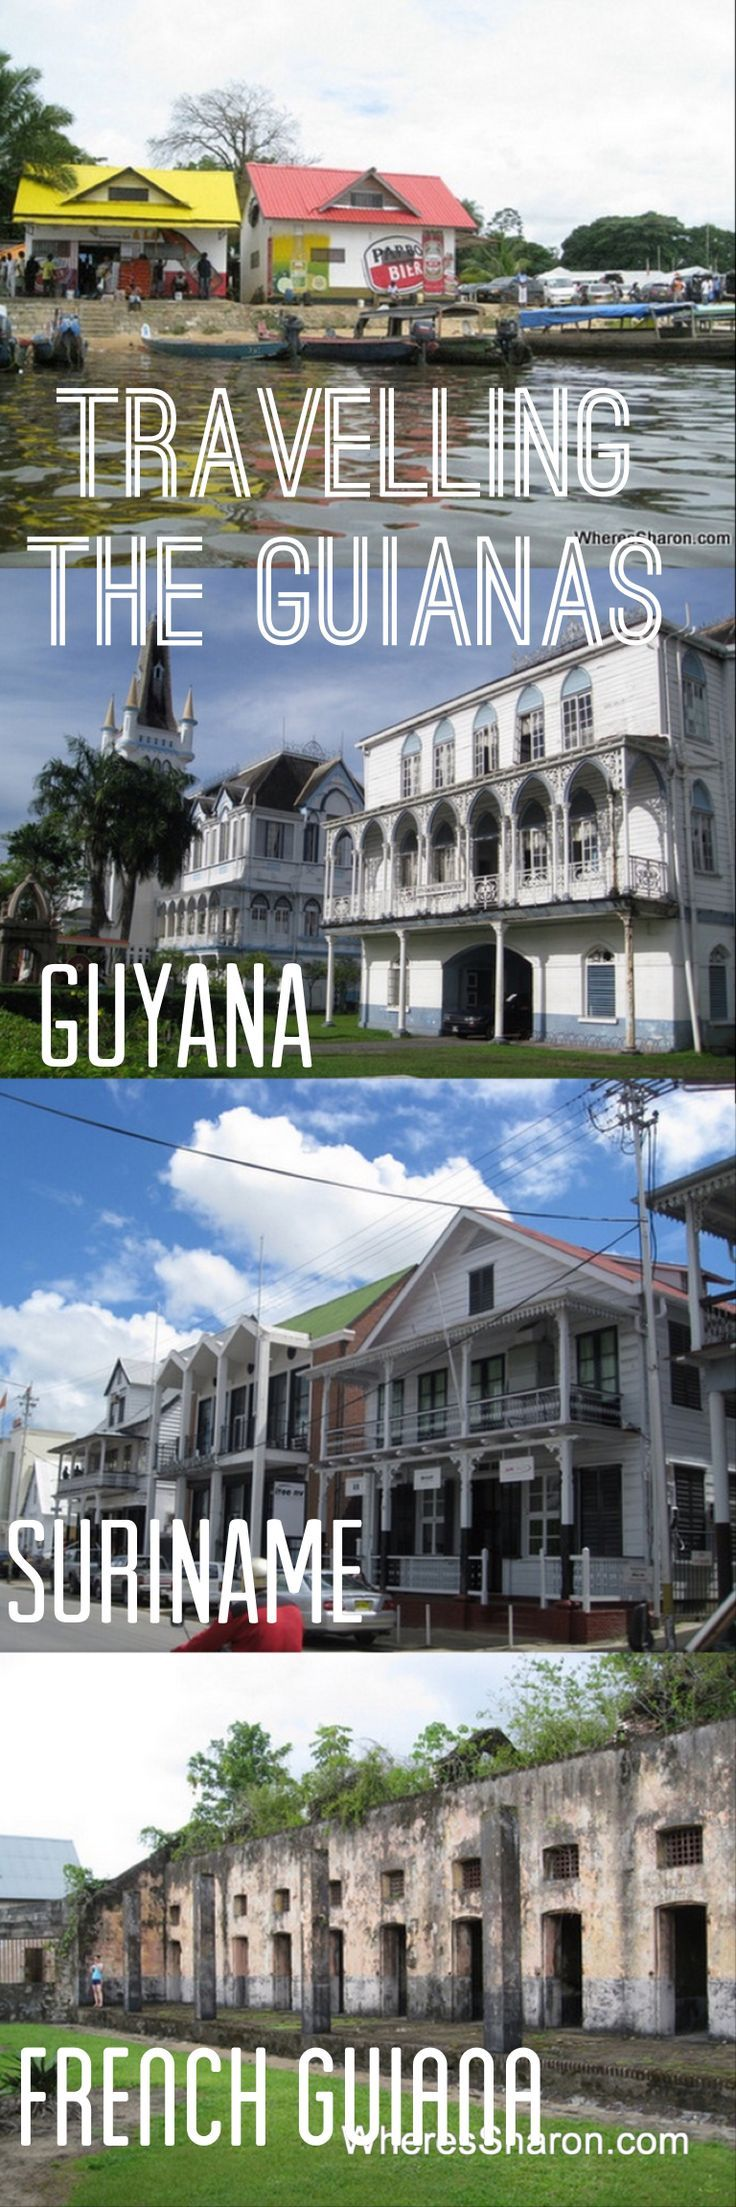 All the details of our trip travelling through the Guianas!! Things to do in Guyana, Suriname and French Guiana